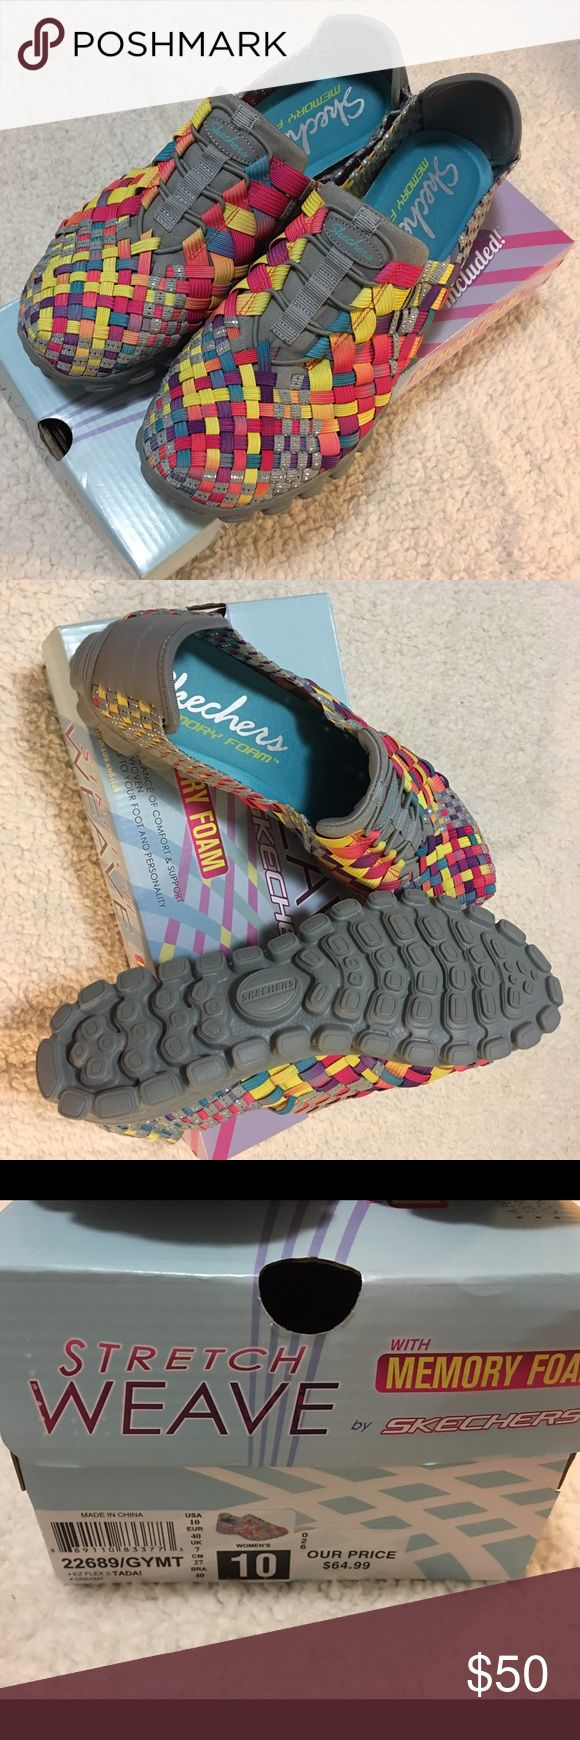 Brand New Sketchers shoes  This is a pair of brand new ladies shoes. Size 10. Vary colors. Open for an offer Skechers Shoes Athletic Shoes